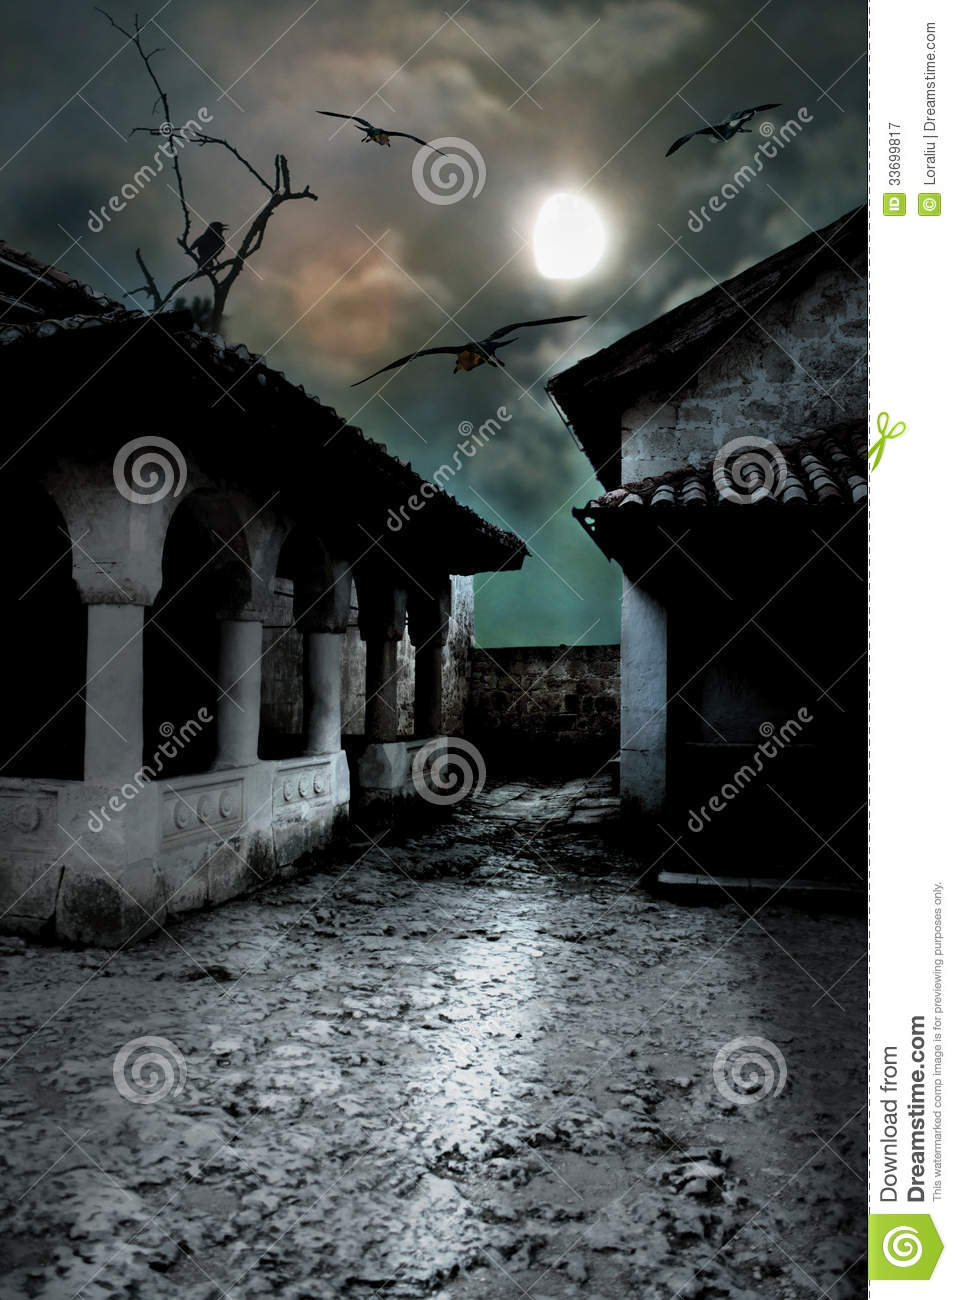 Scary Dark Courtyard In The Ominous Moonlight Royalty Free